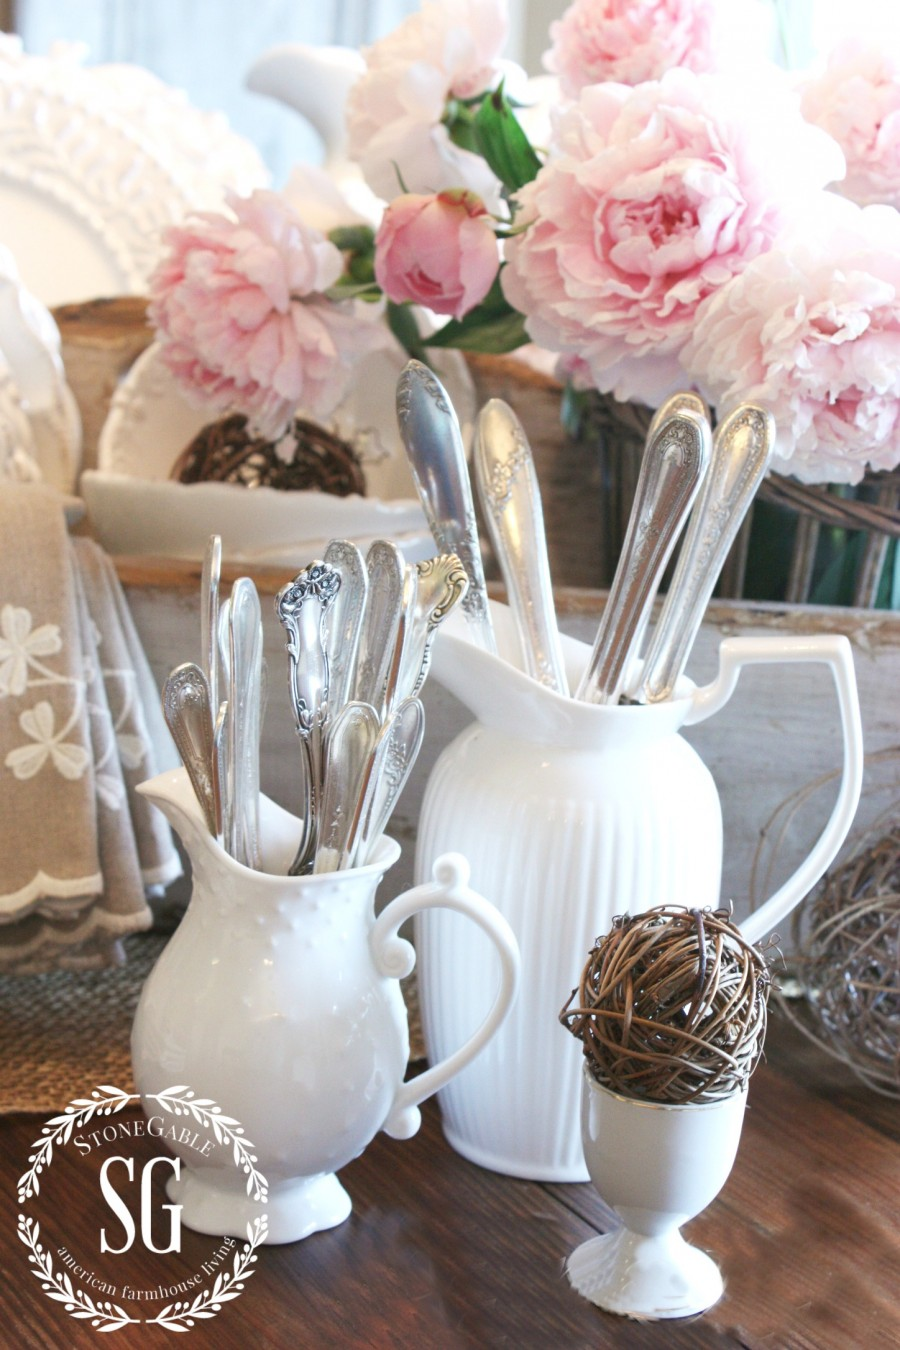 5 GREAT USES FOR PITCHERS... FARMHOUSE STYLE-silver in white pitchers-stonegableblog.com